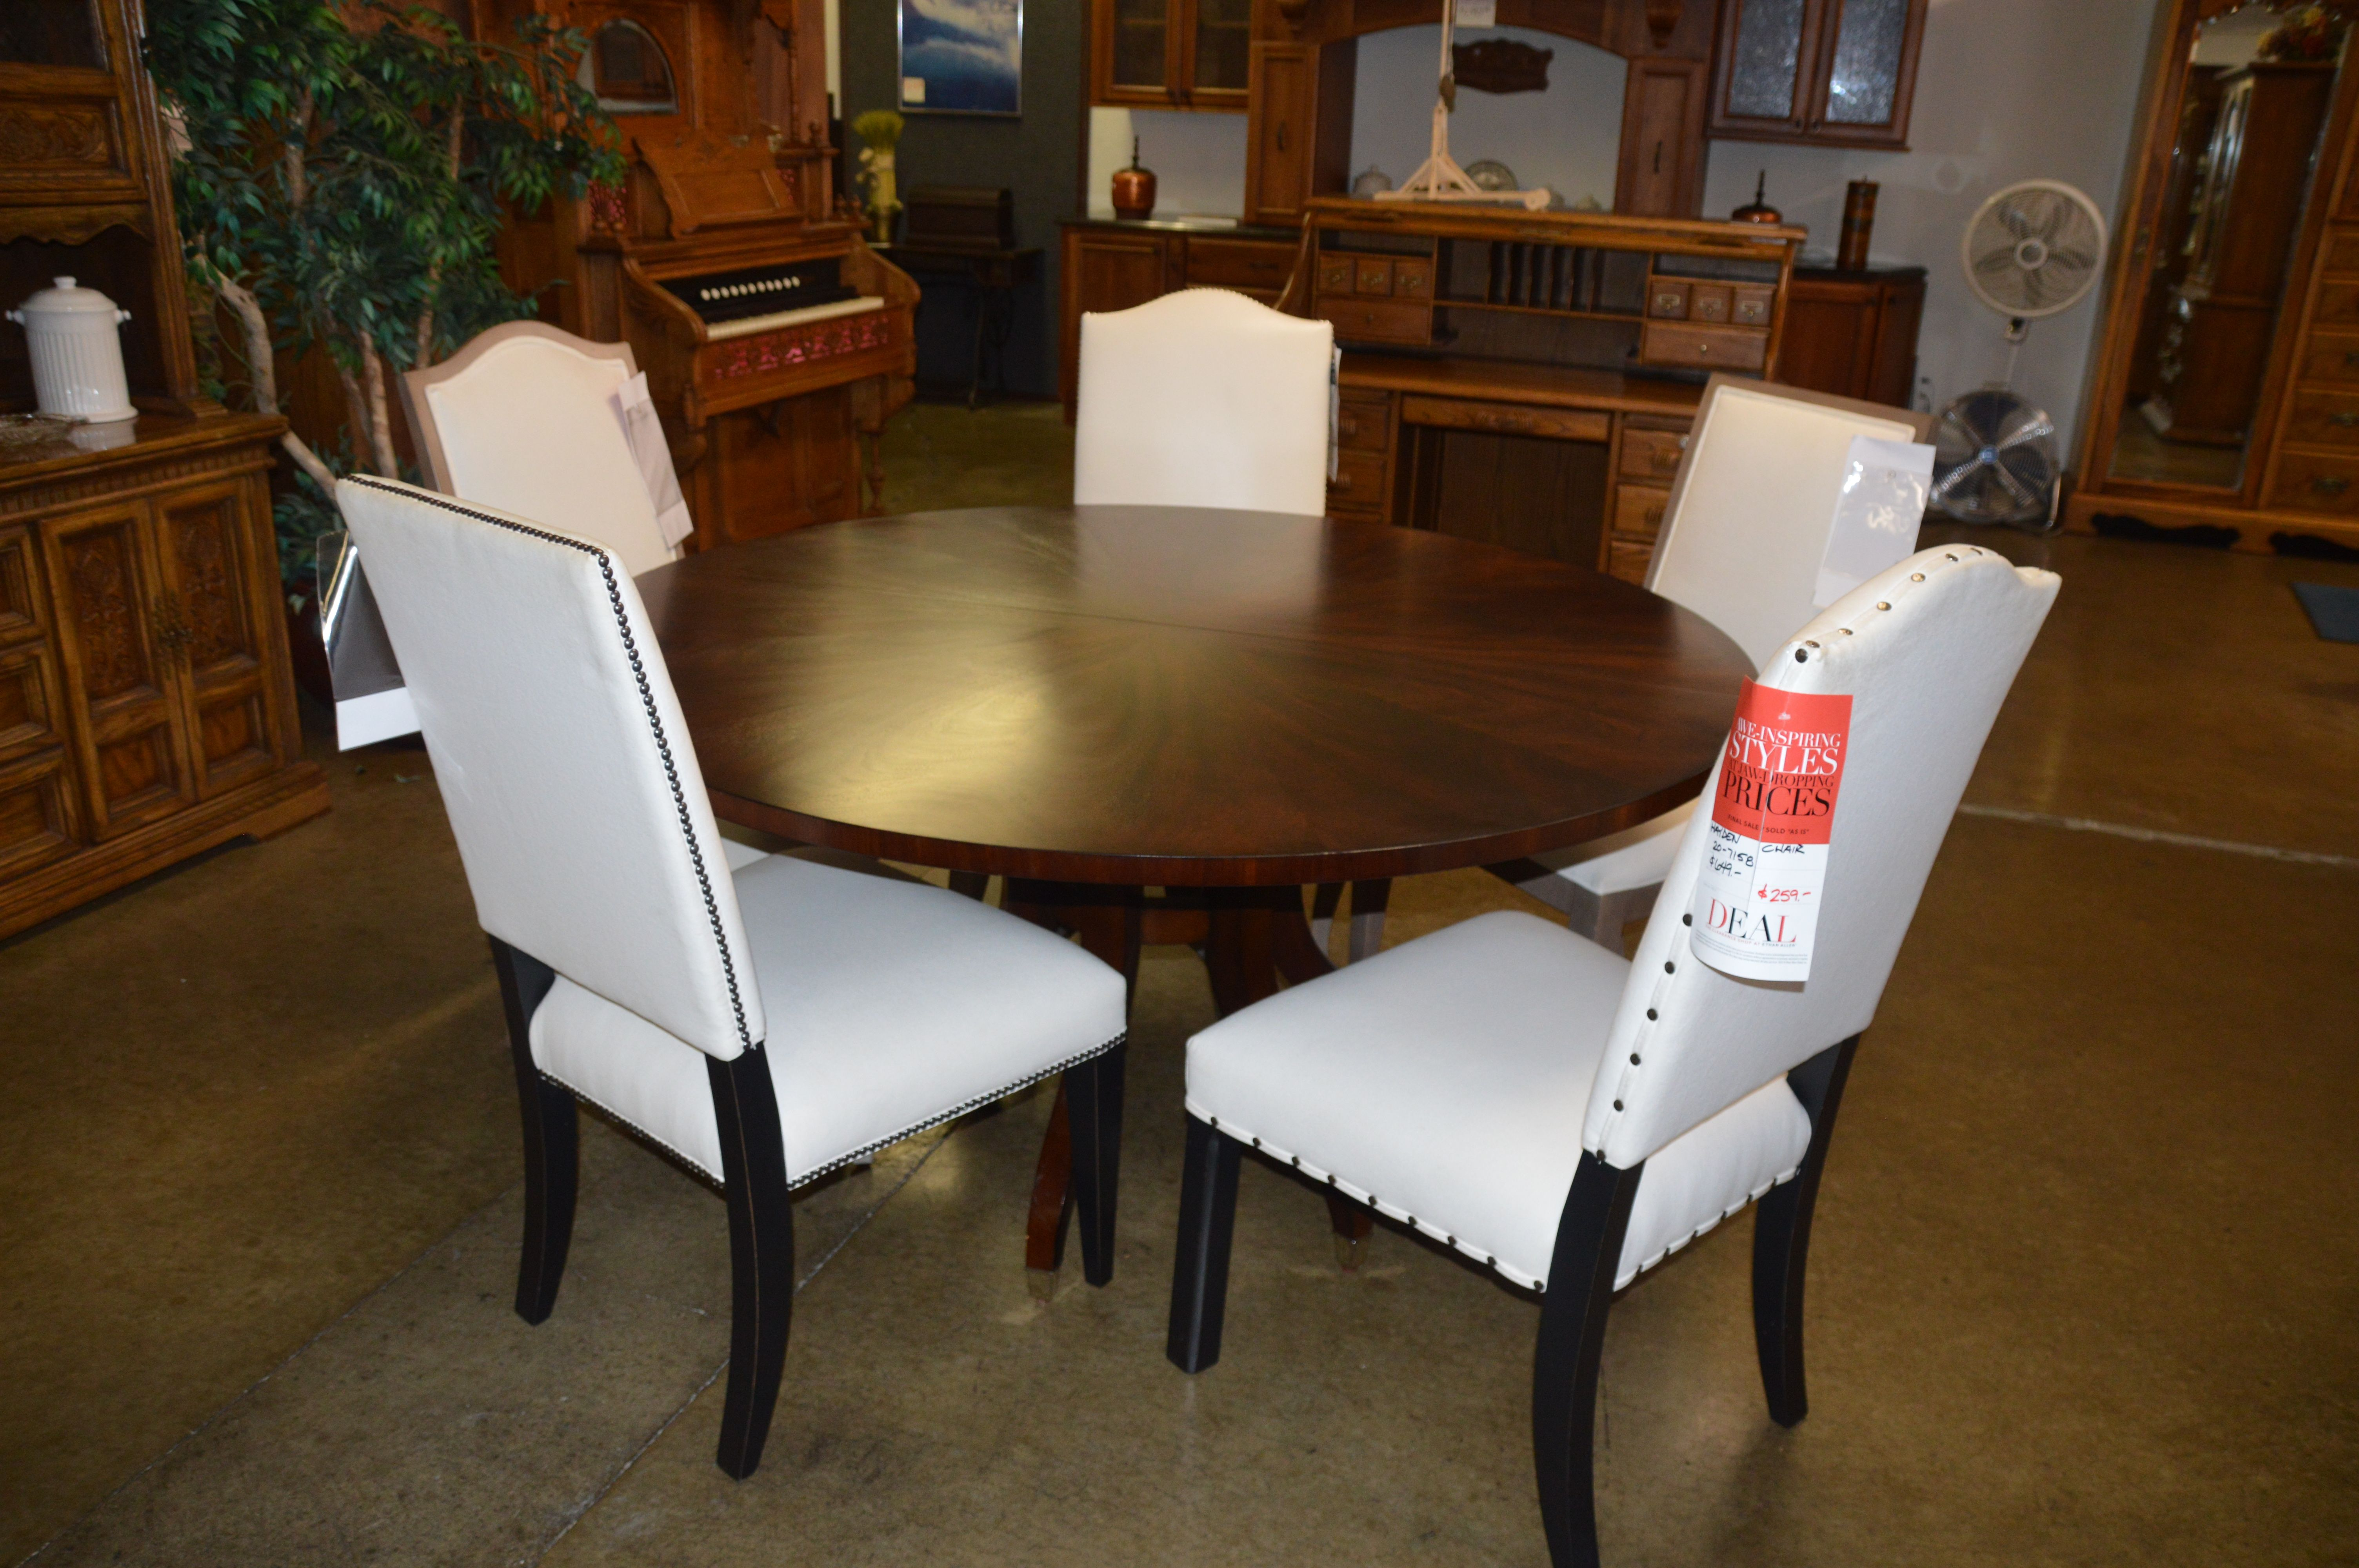 Ethan Allen Like New Dining Table and 5 Eclectic chairs